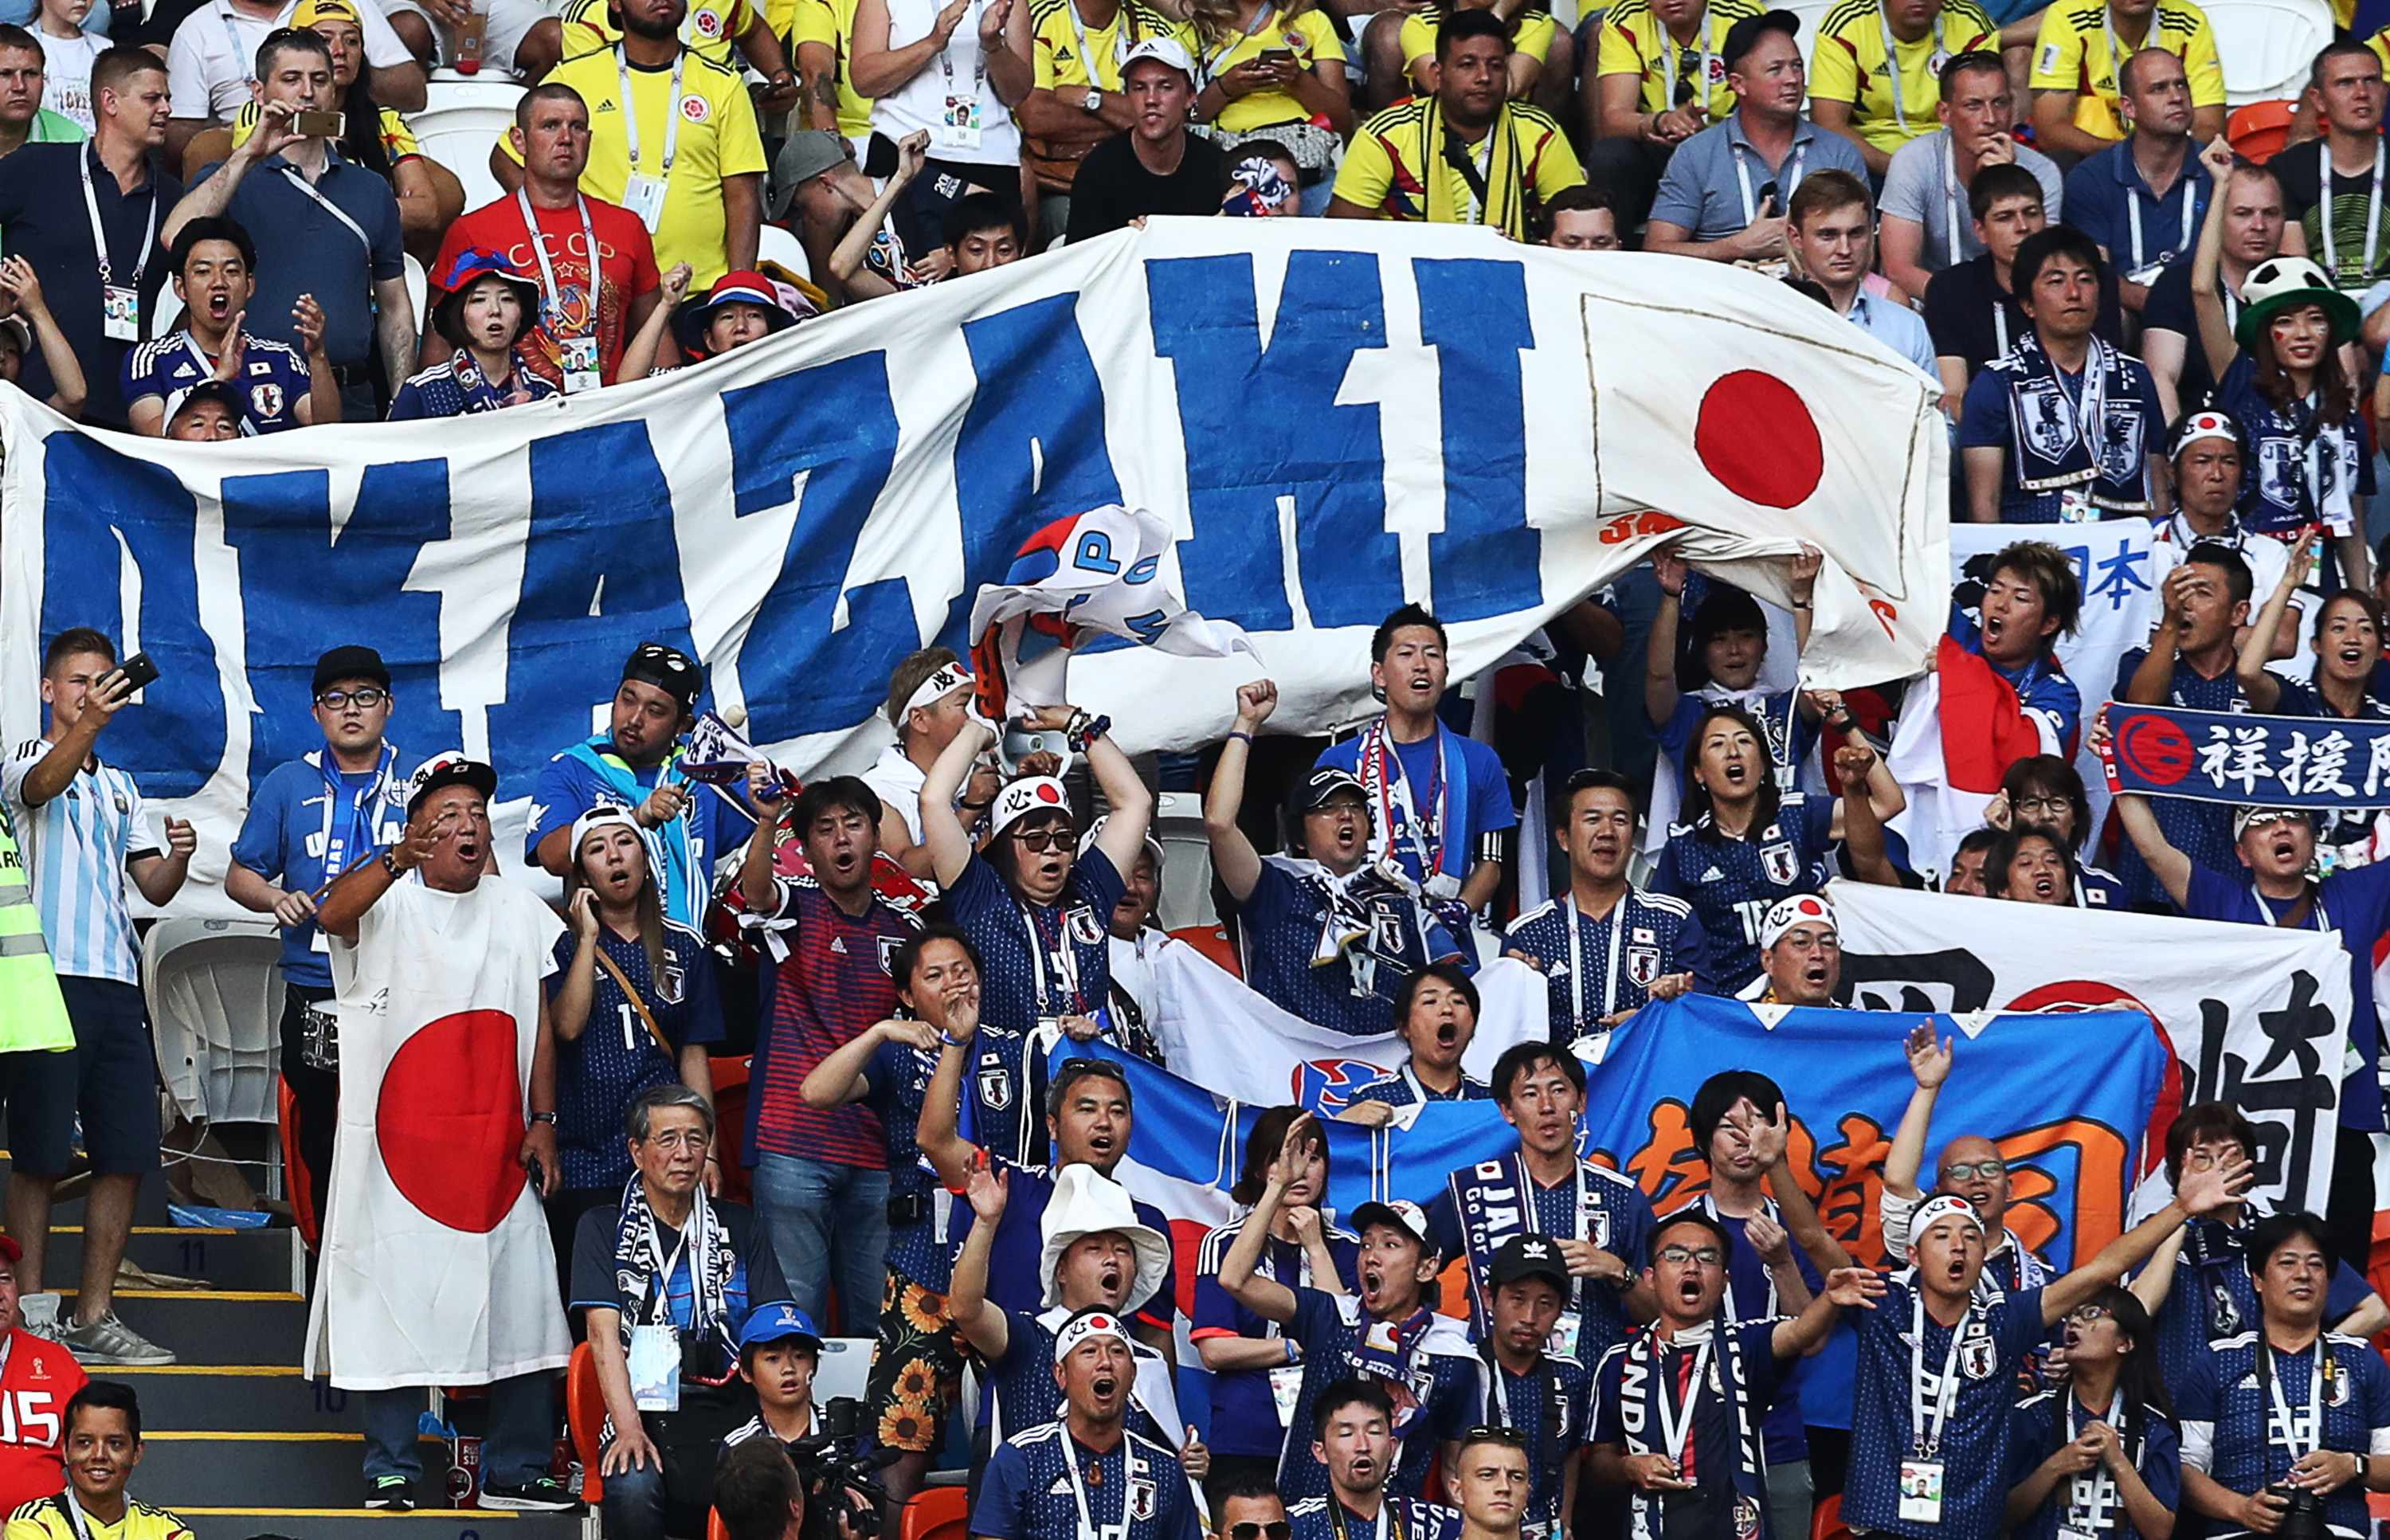 Japanese football fans at the world cup